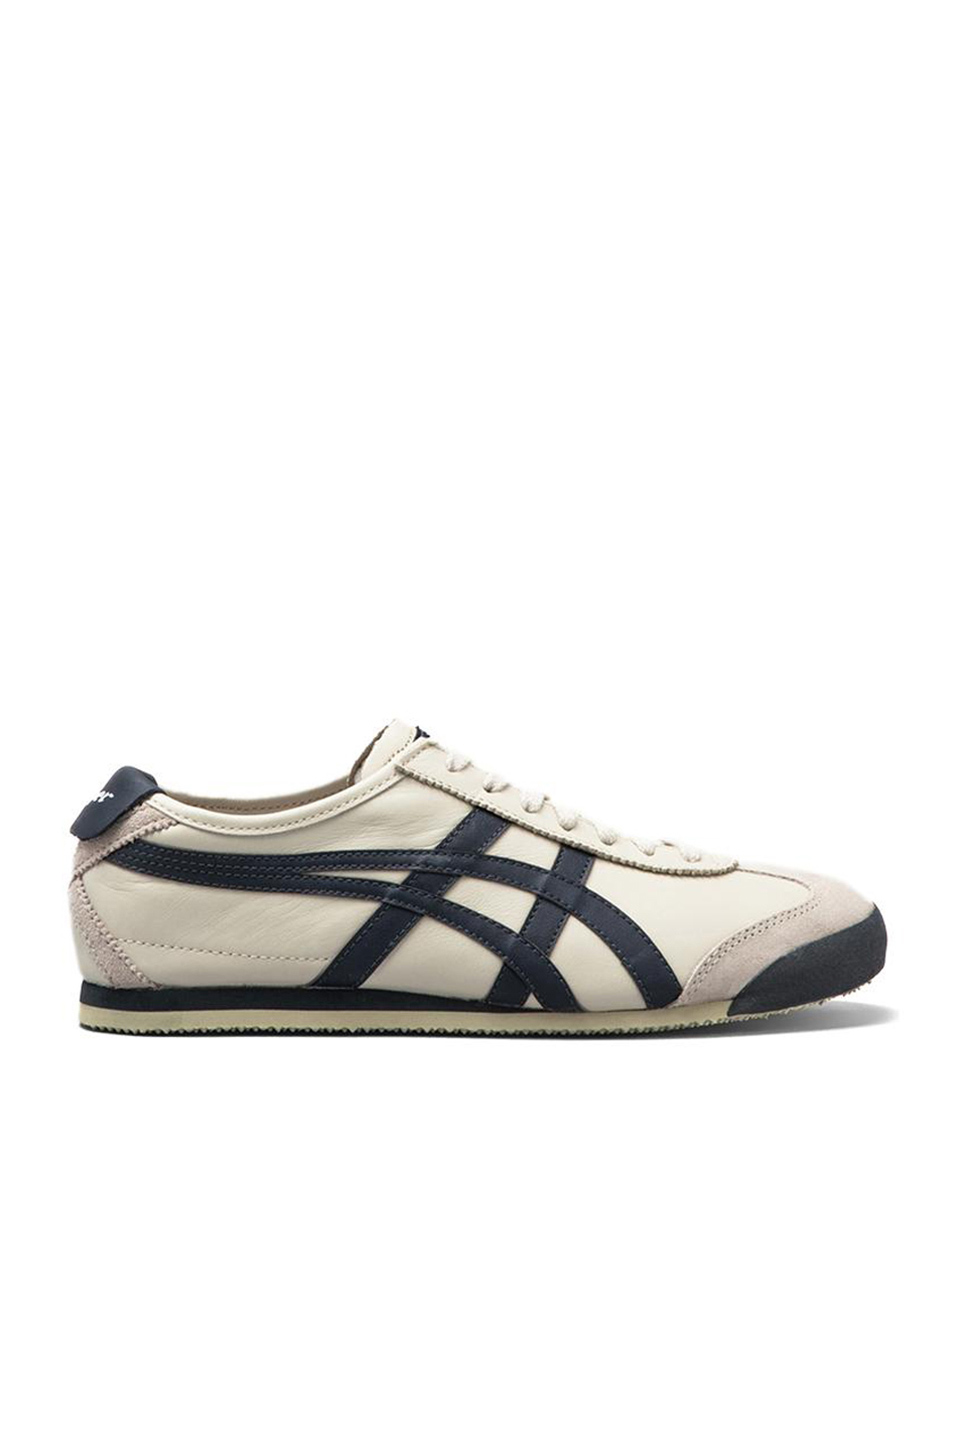 huge selection of c6cc0 20737 Mexico 66, Onitsuka Tiger